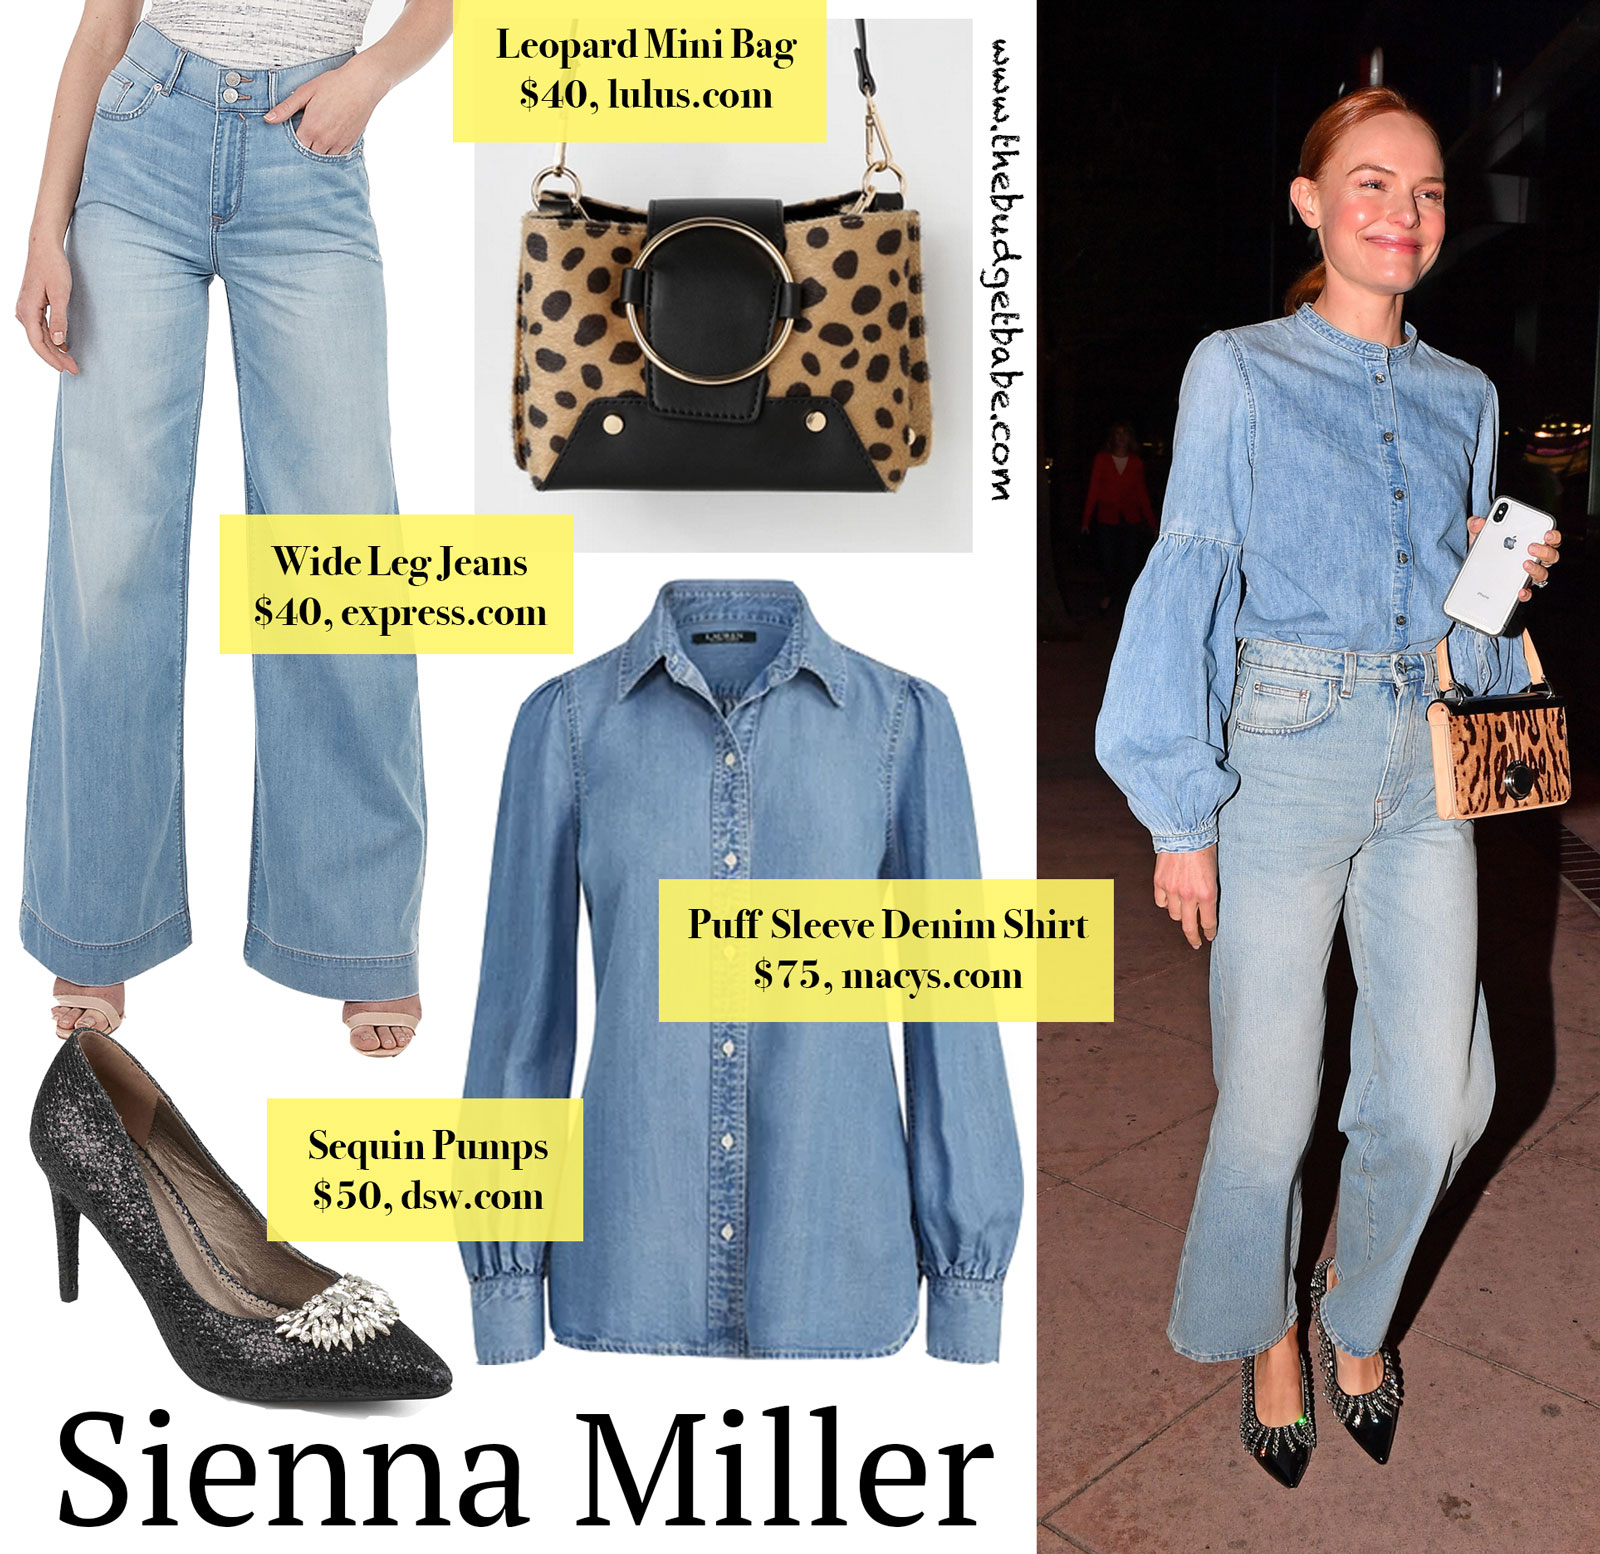 c078011a Kate Bosworth's Puff Sleeve Denim Shirt, Wide Leg Jeans, and Leopard ...